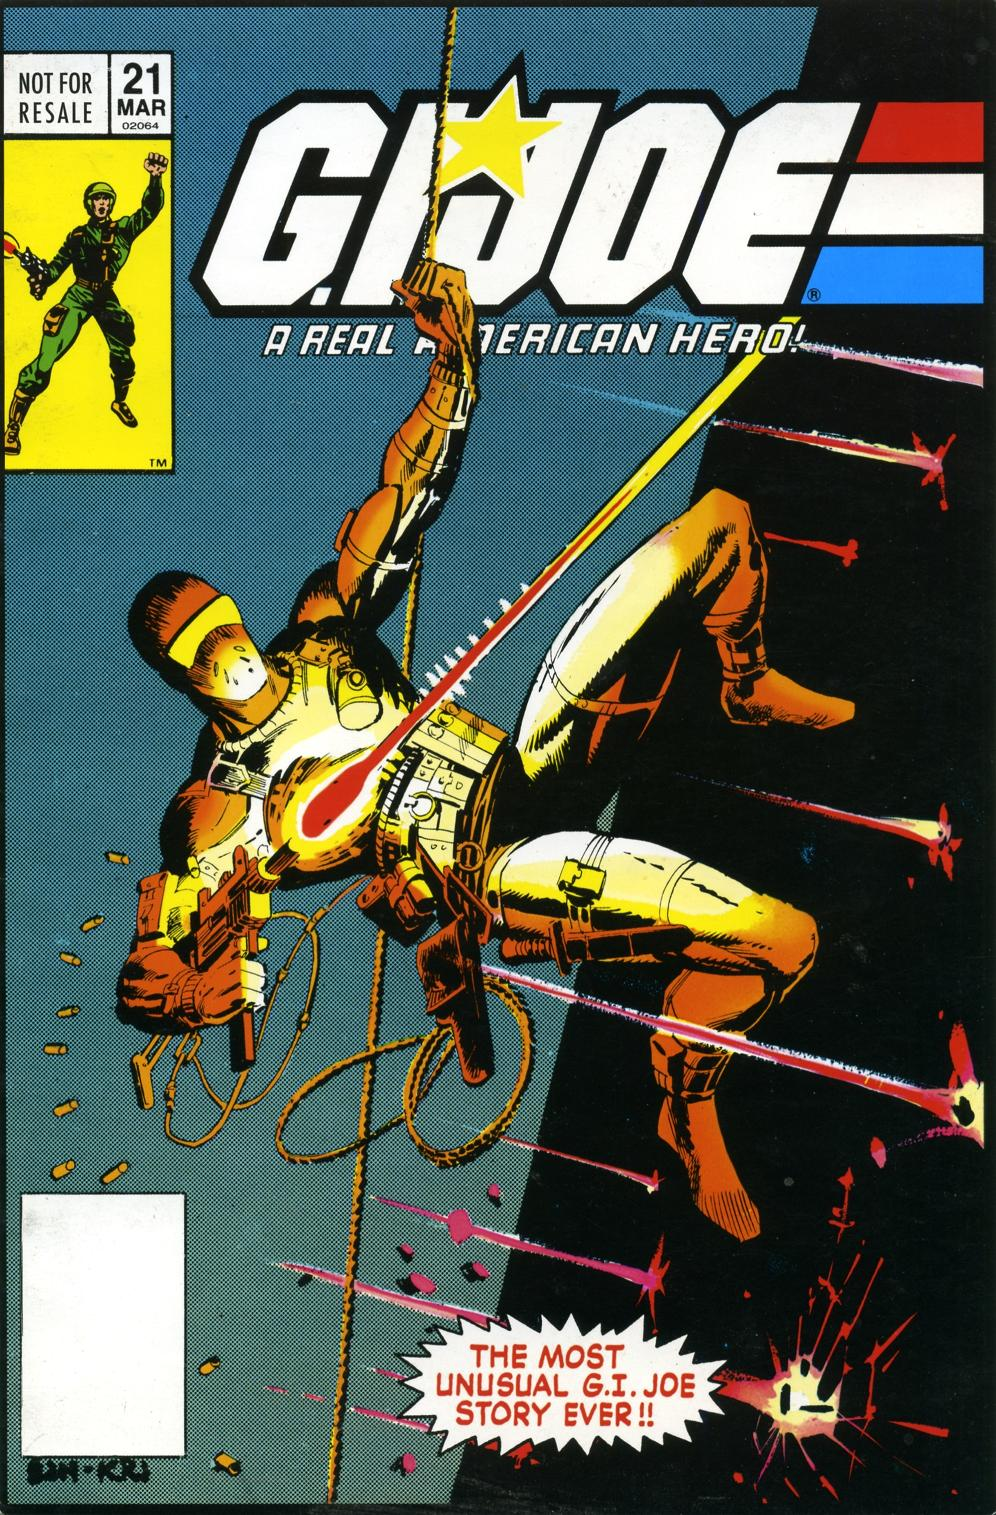 gi-joe-21-silent-issue-001.jpg